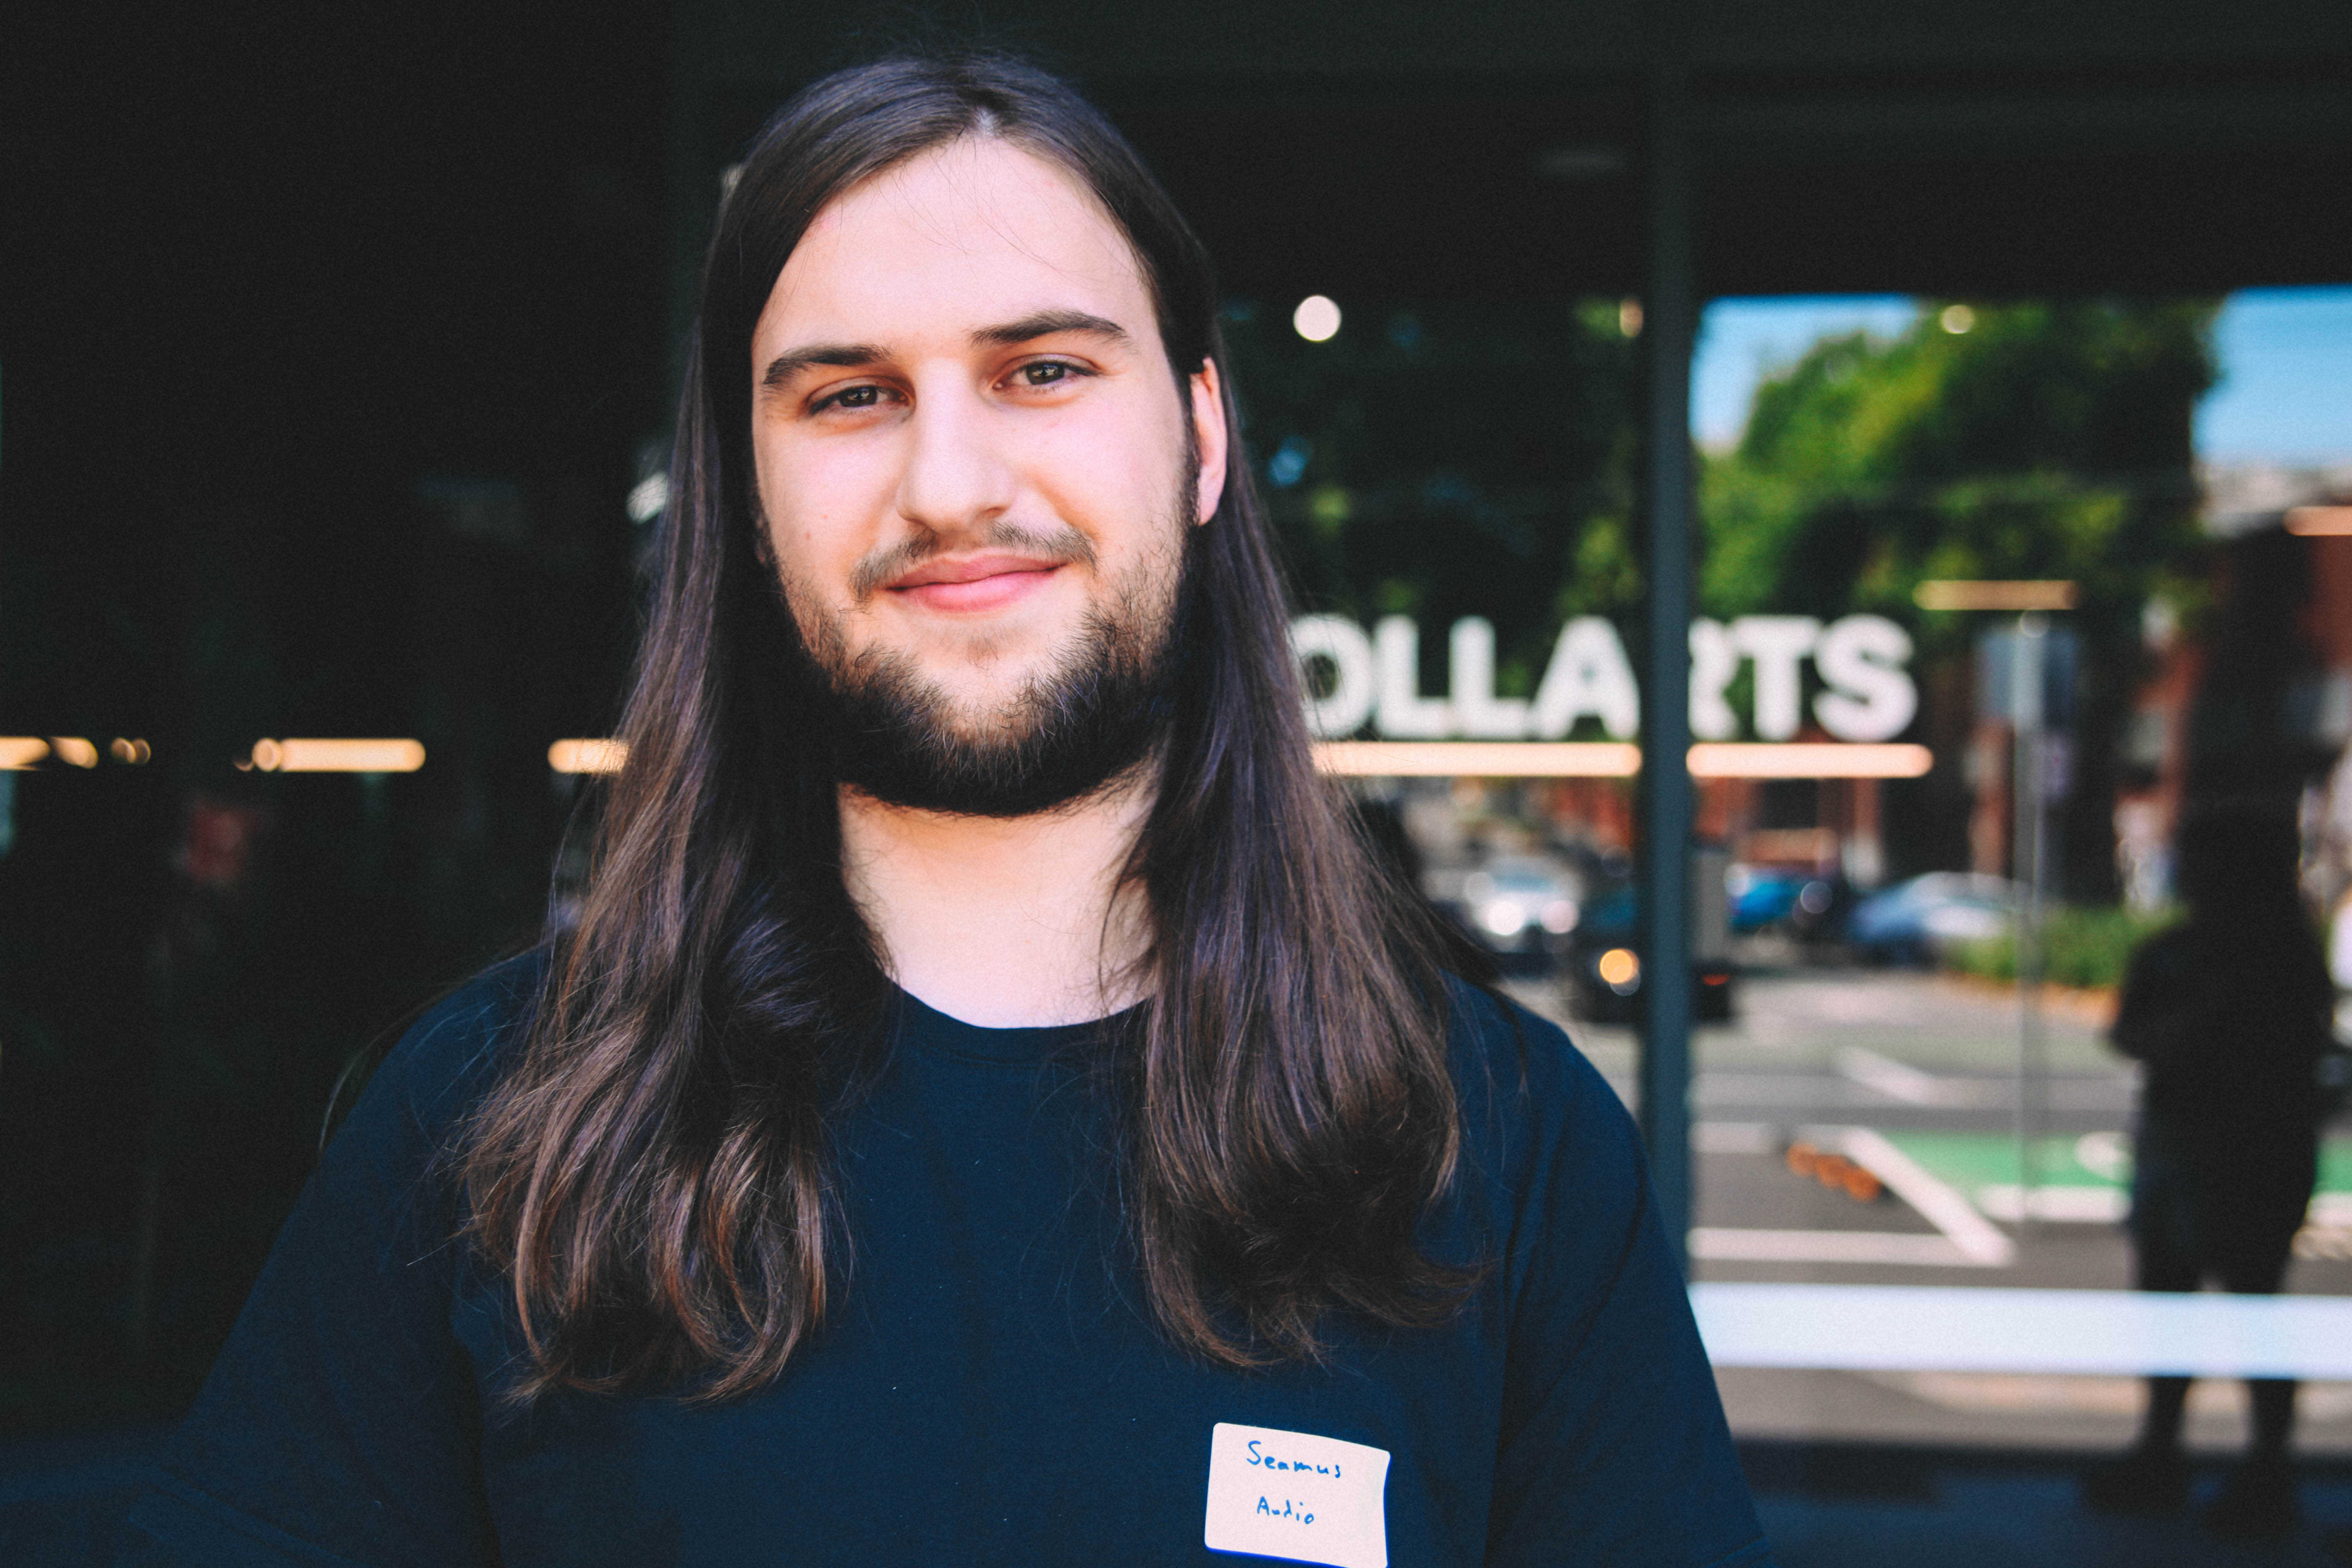 Seamus - student with long hair and beard